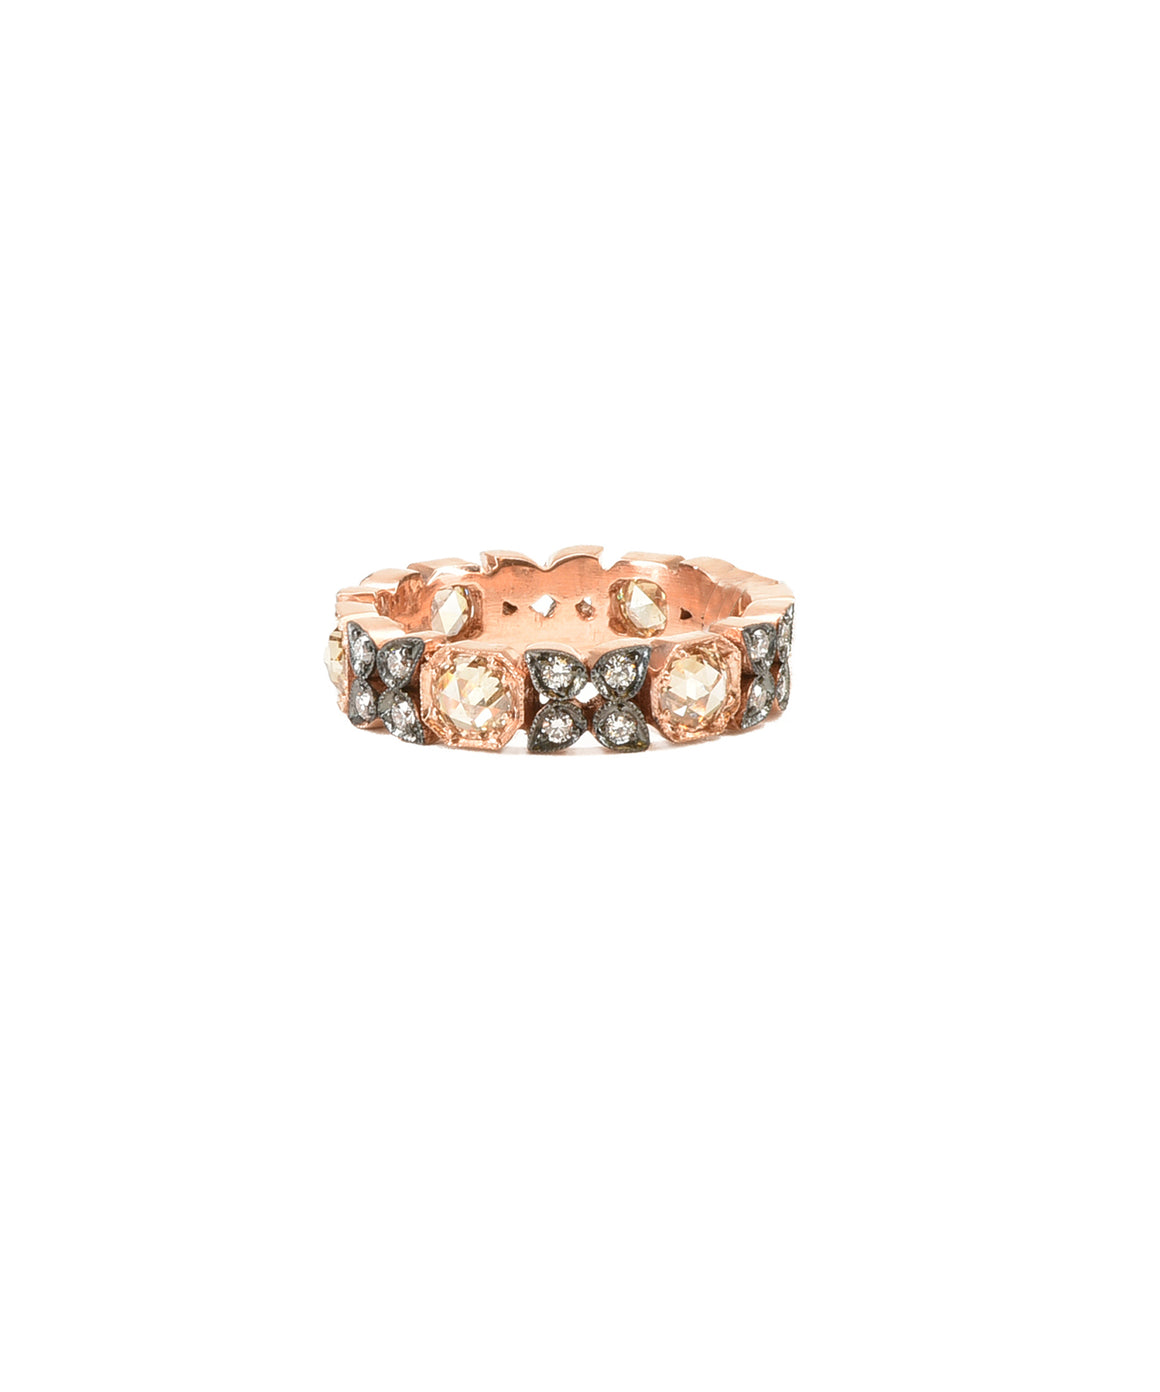 Two-tone band with rose cut diamoinds